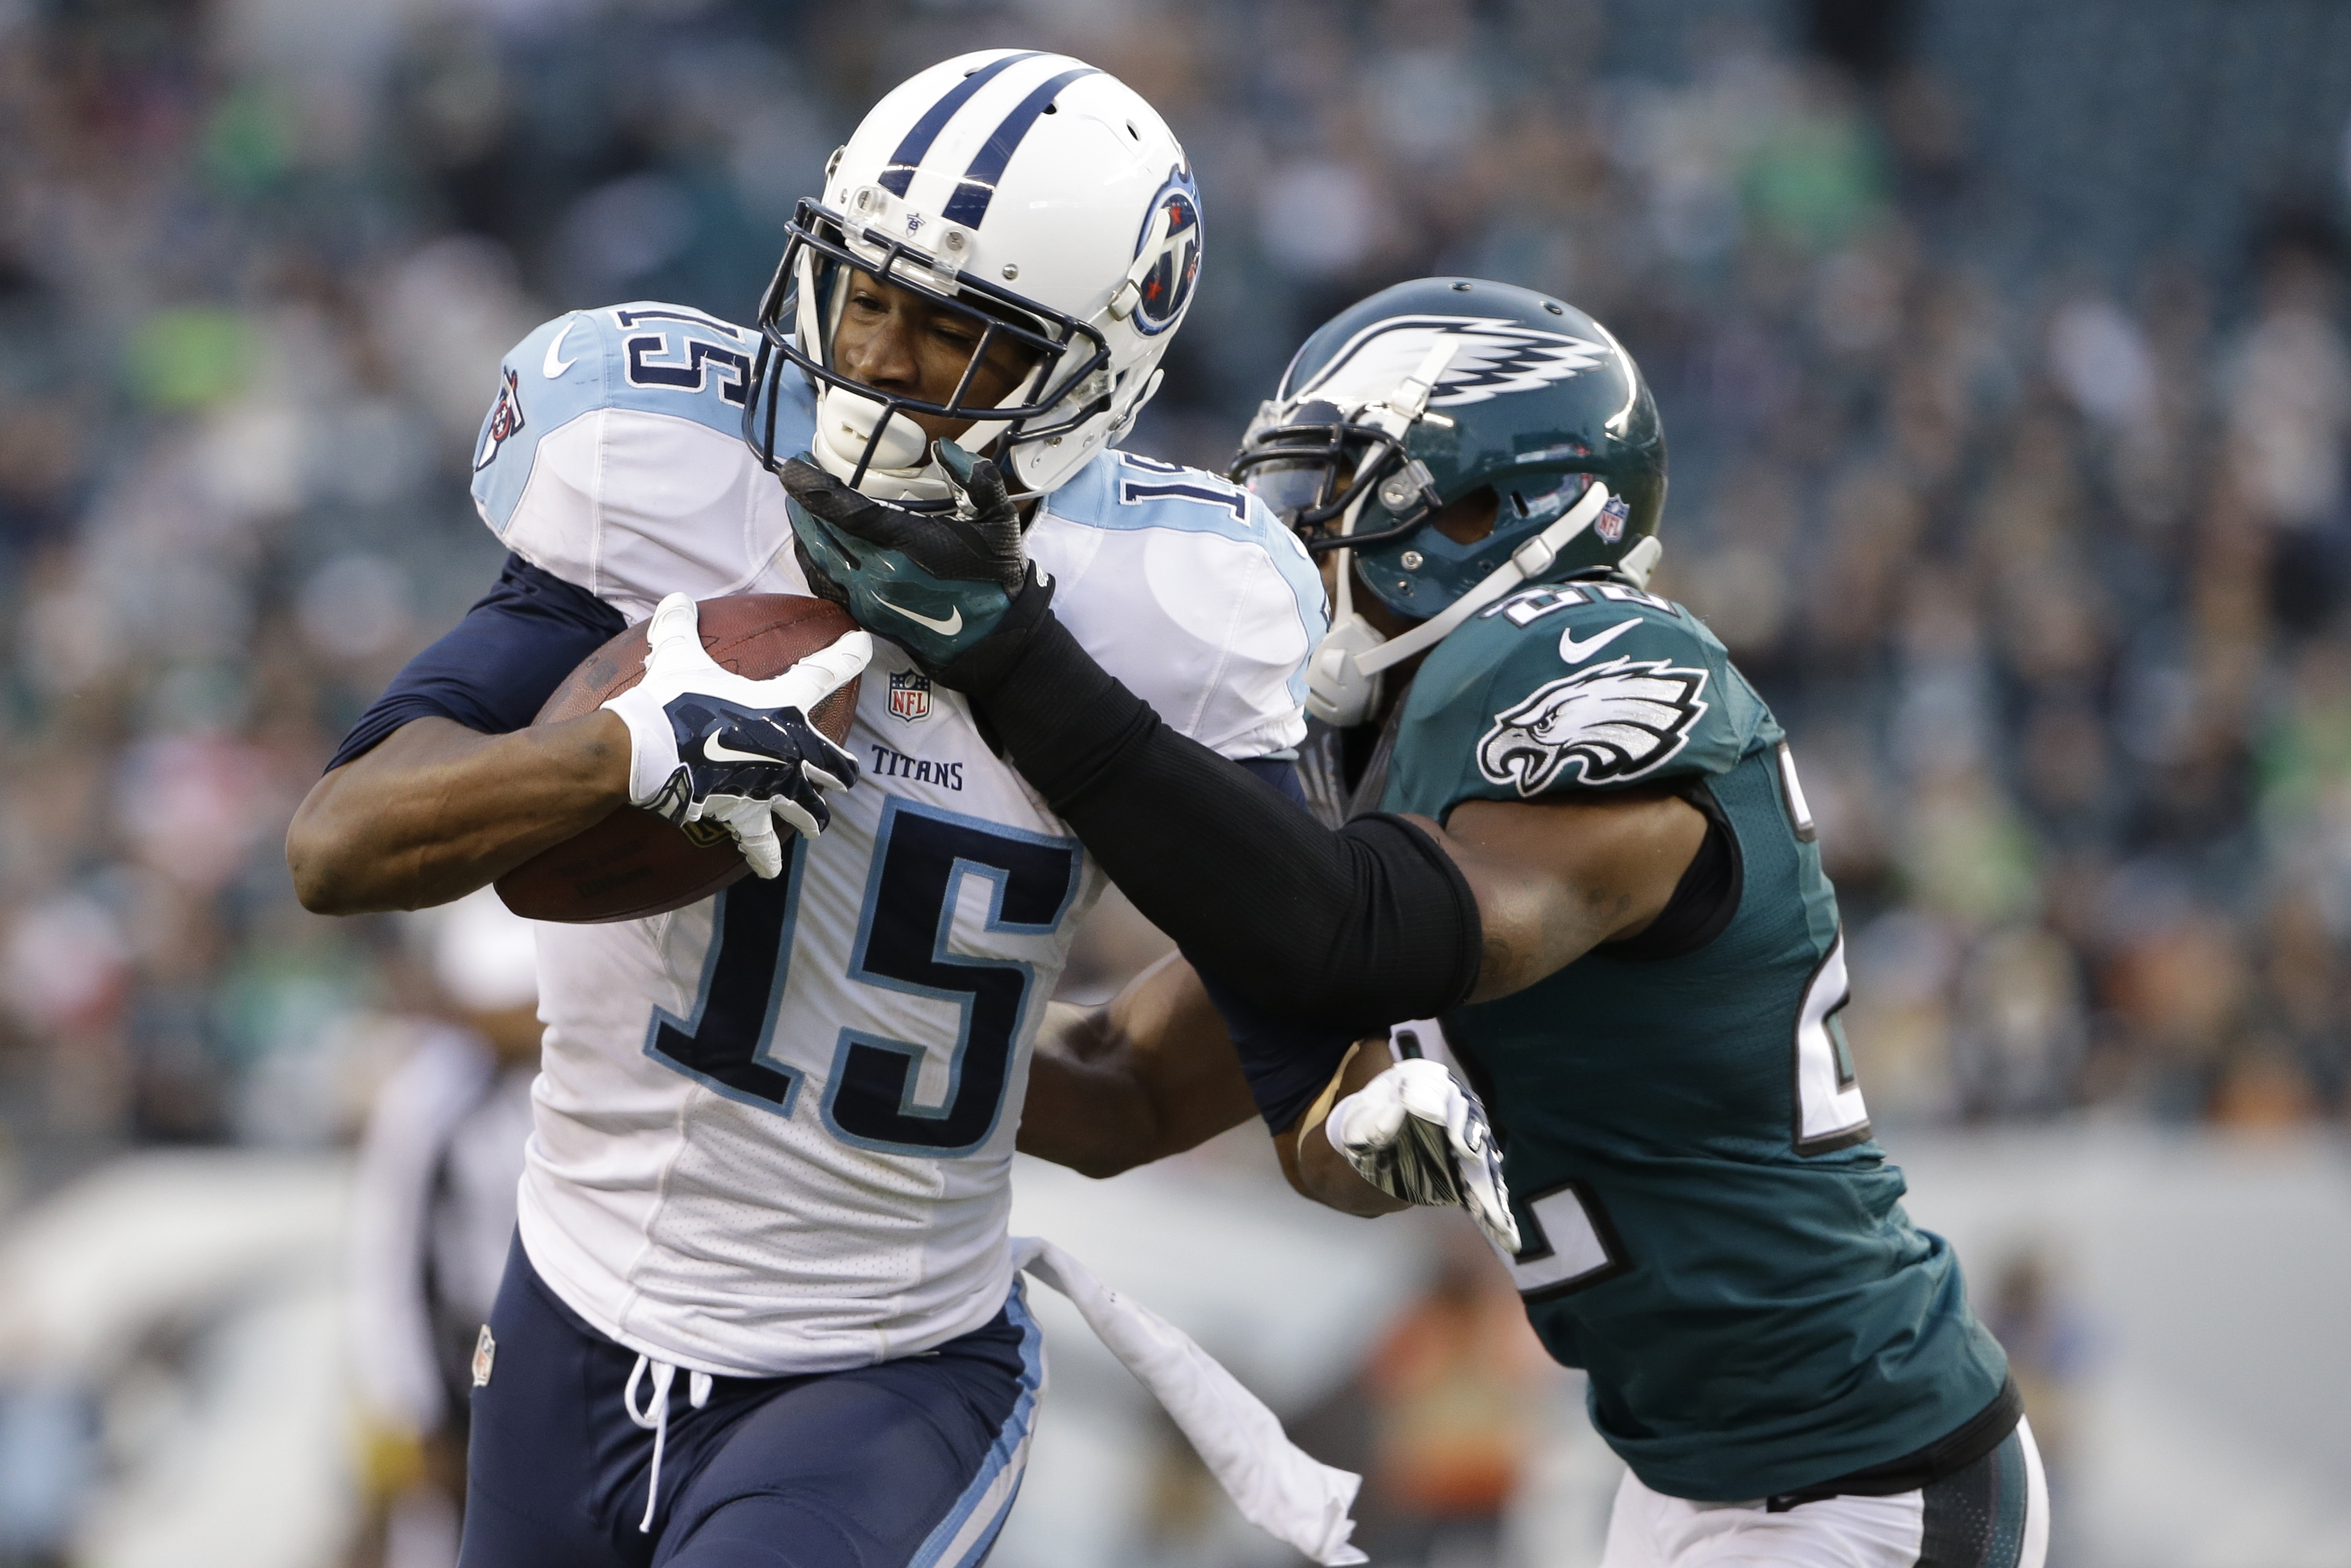 FILE- In this Nov. 23, 2014, file photo, Tennessee Titans' Justin Hunter, left, is tackled by Philadelphia Eagles' Brandon Boykin during the second half of an NFL football game in Philadelphia. Hunter was booked into his hometown jail at the Virginia Beac